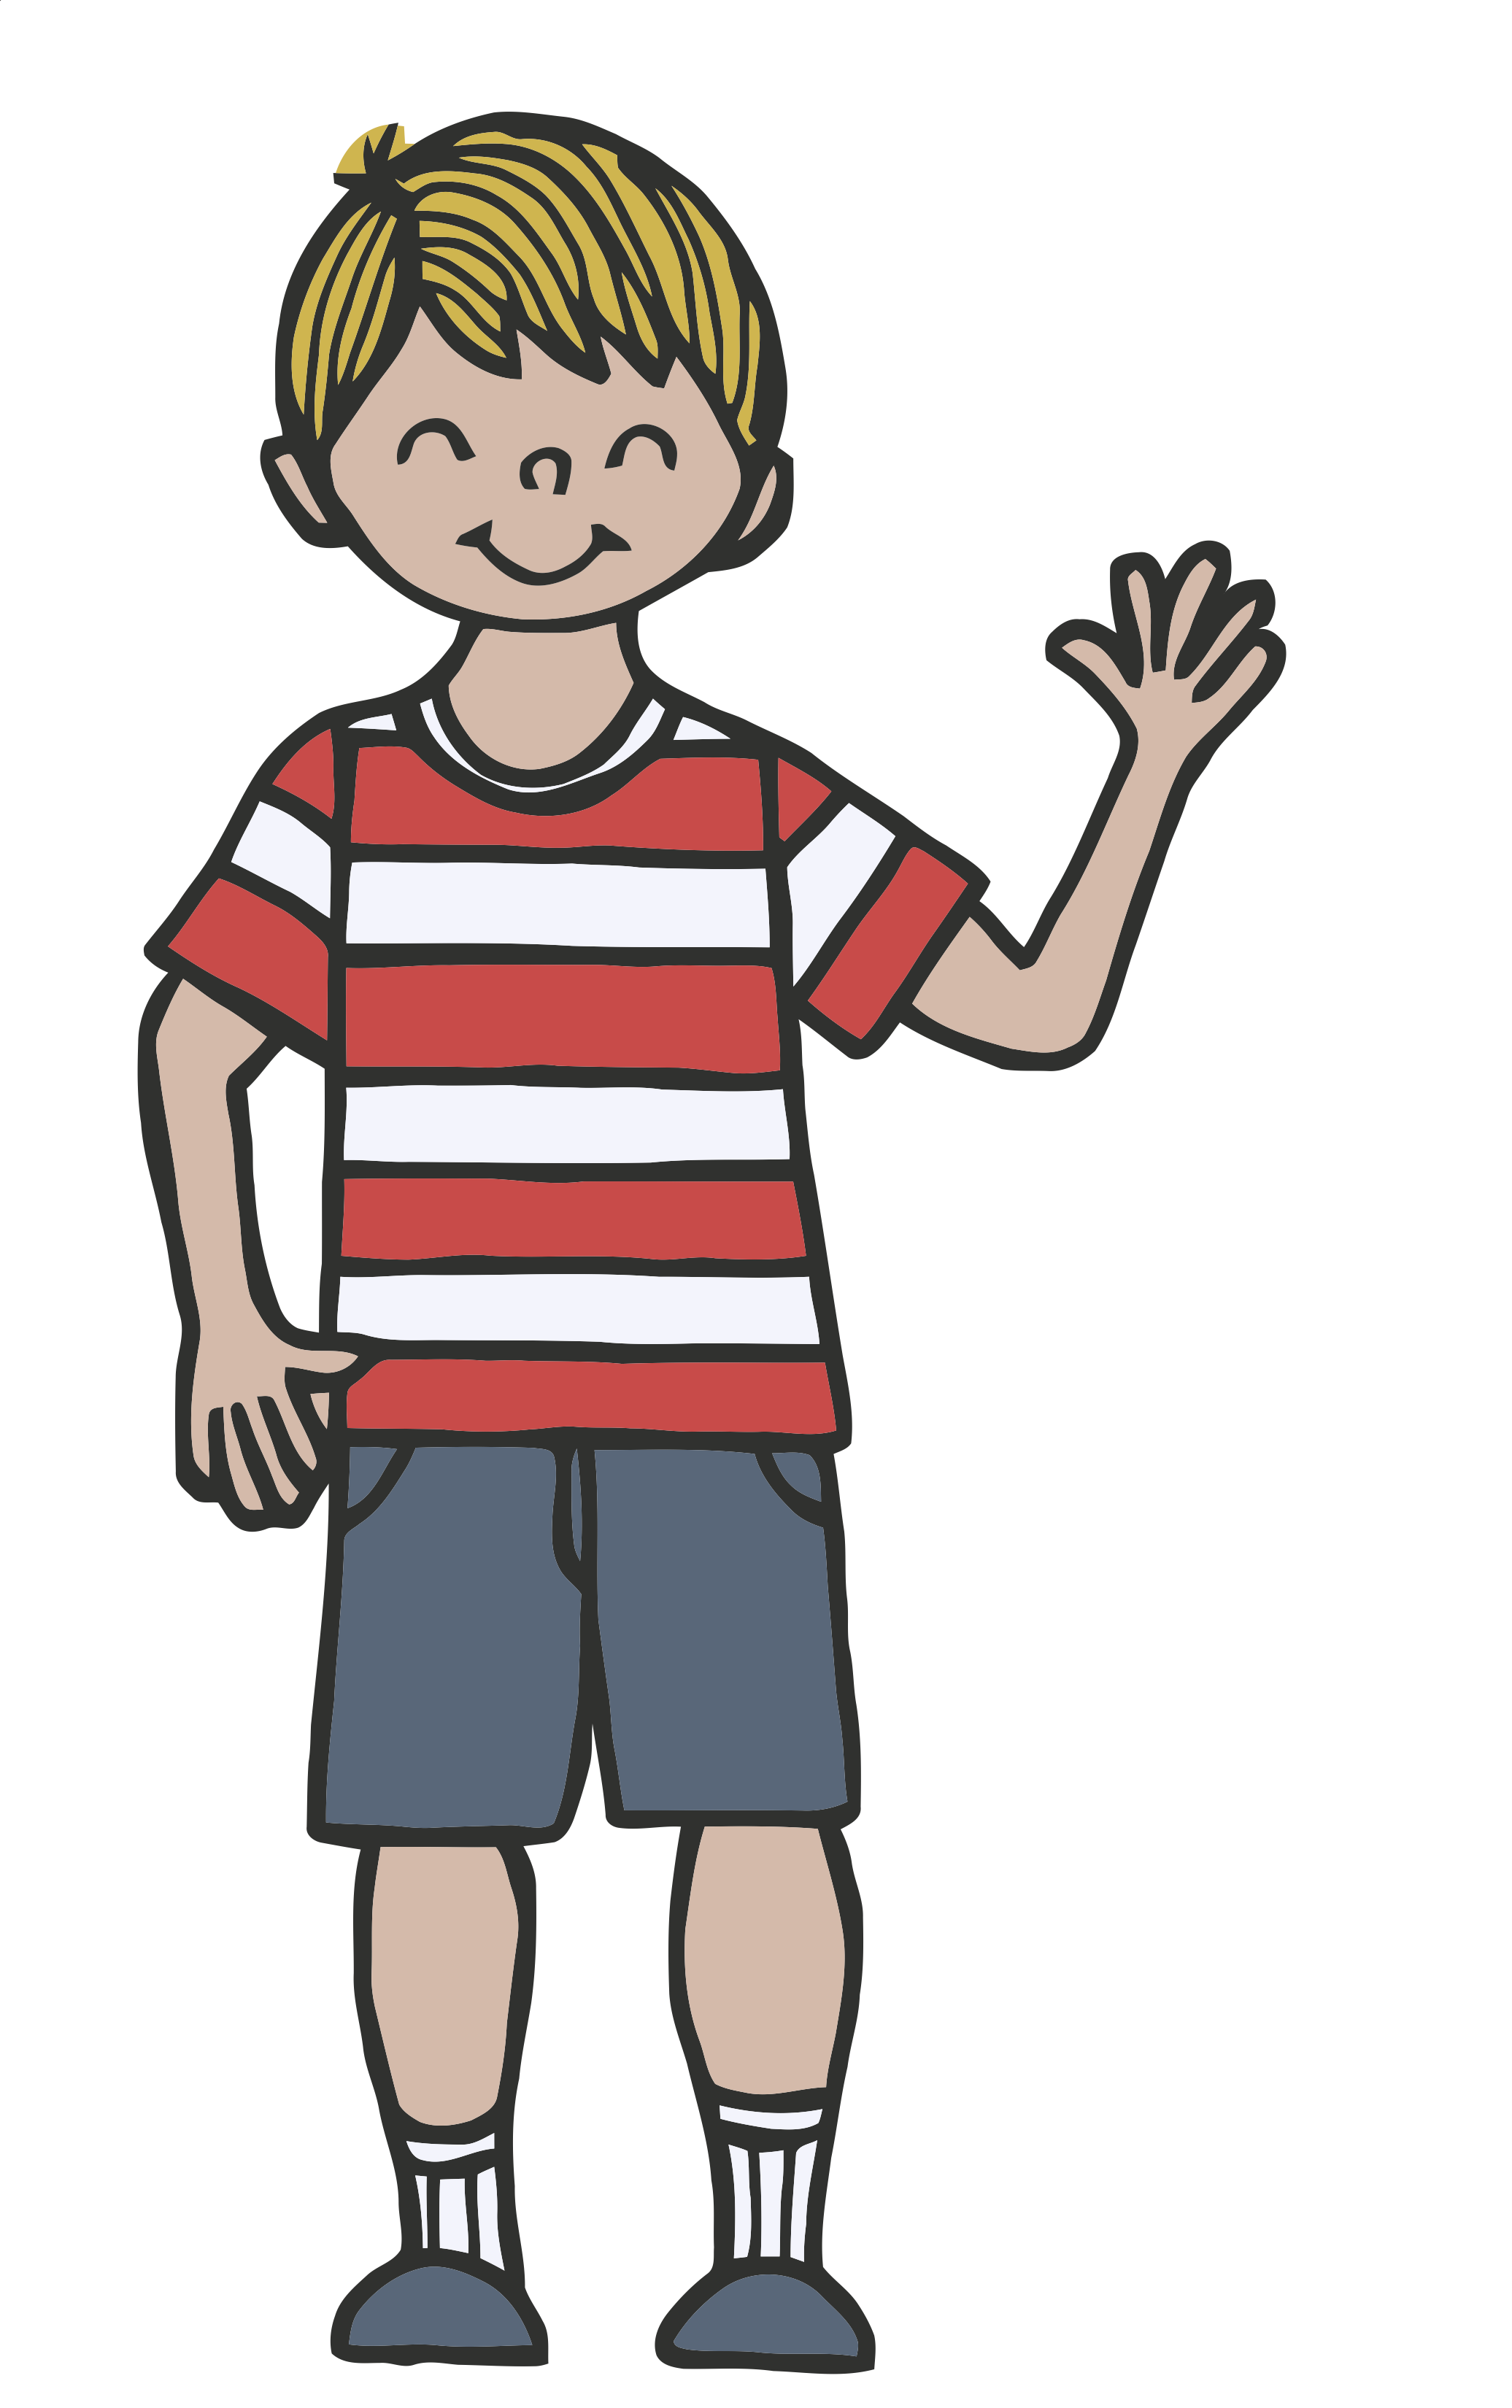 previewPerson Waving Goodbye Clipart